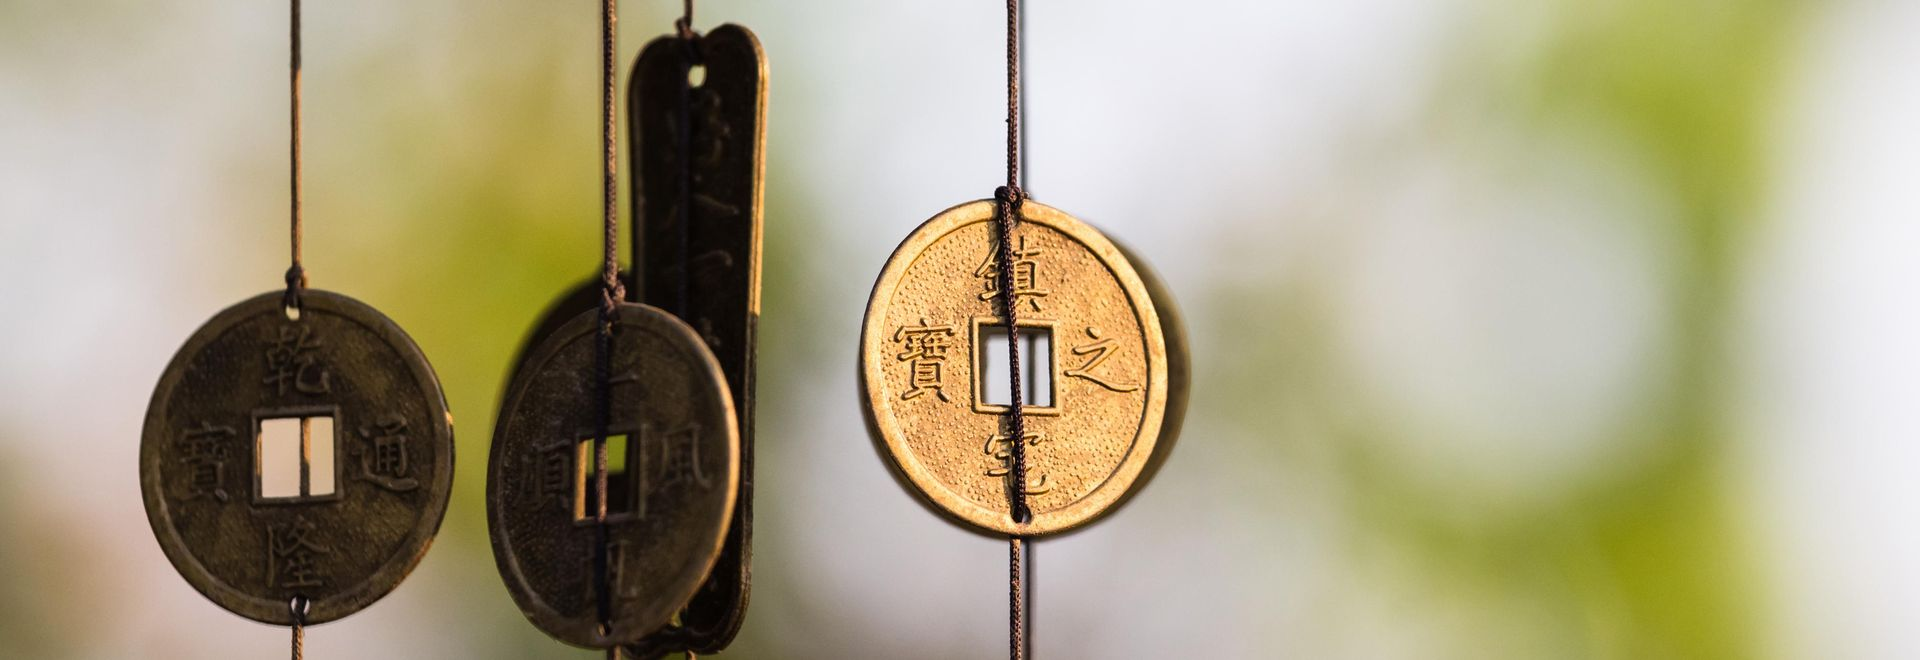 Antique Chinese coins hanged outside the house as wind chimes  for protection and good luck